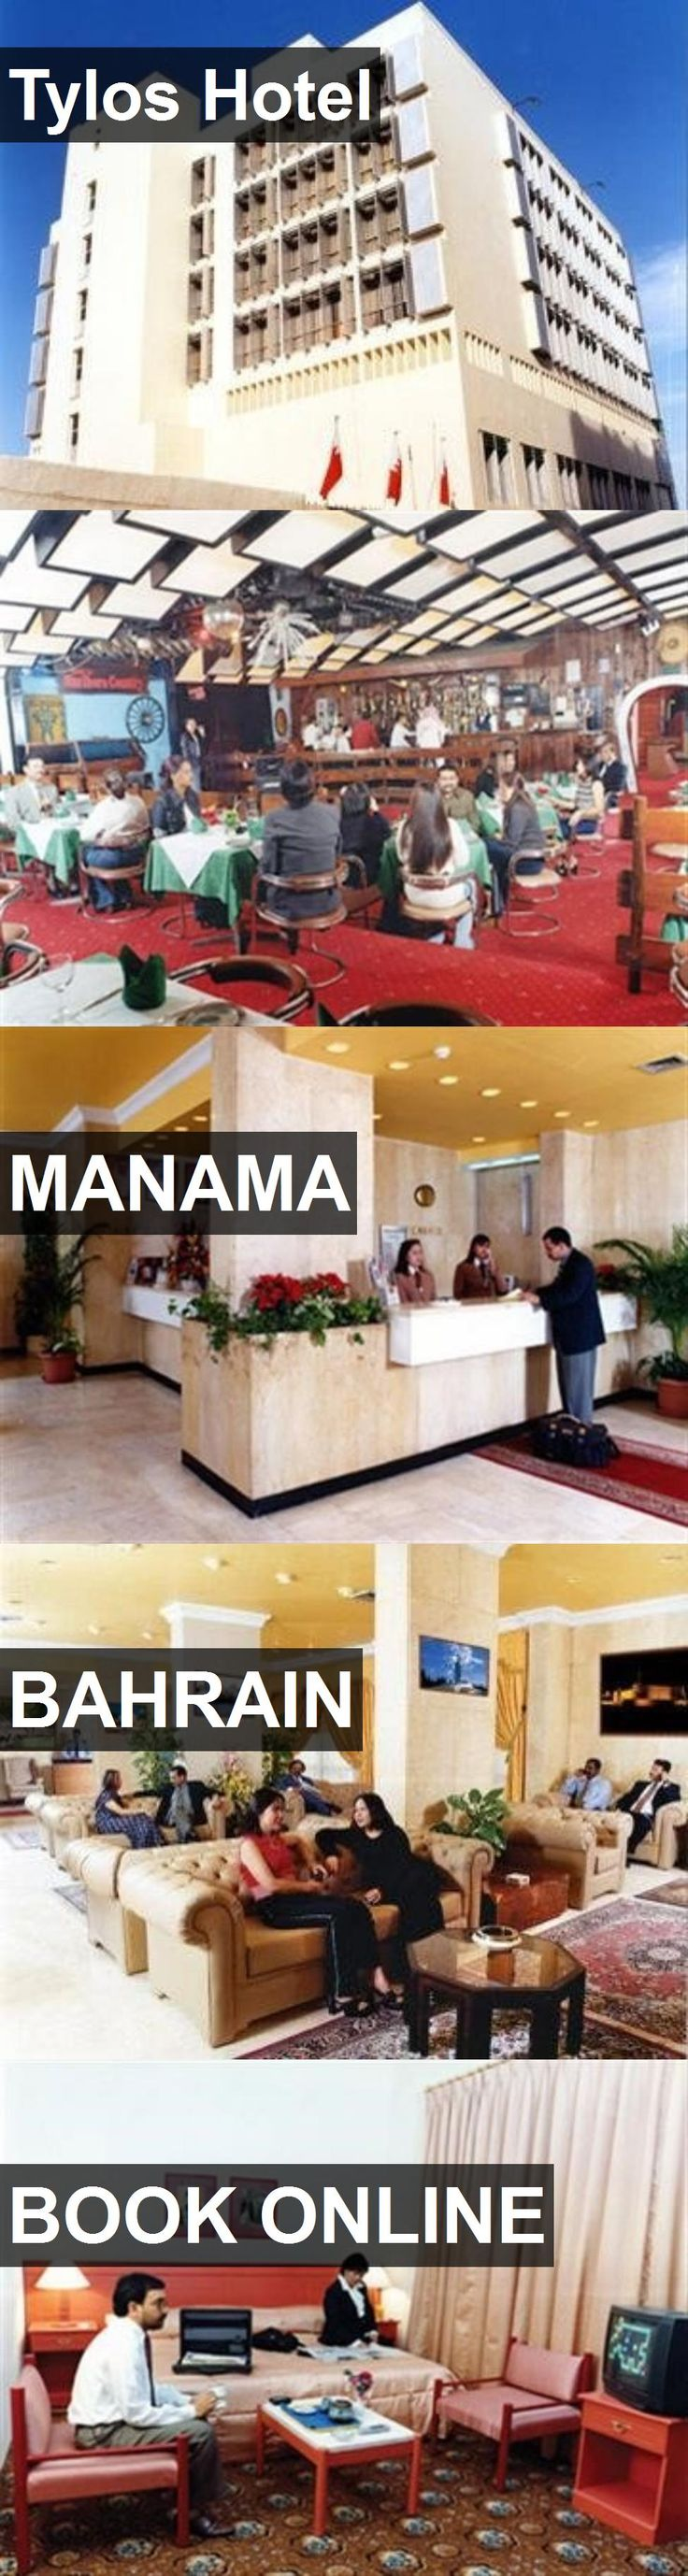 Tylos Hotel in Manama, Bahrain. For more information, photos, reviews and best prices please follow the link. #Bahrain #Manama #travel #vacation #hotel